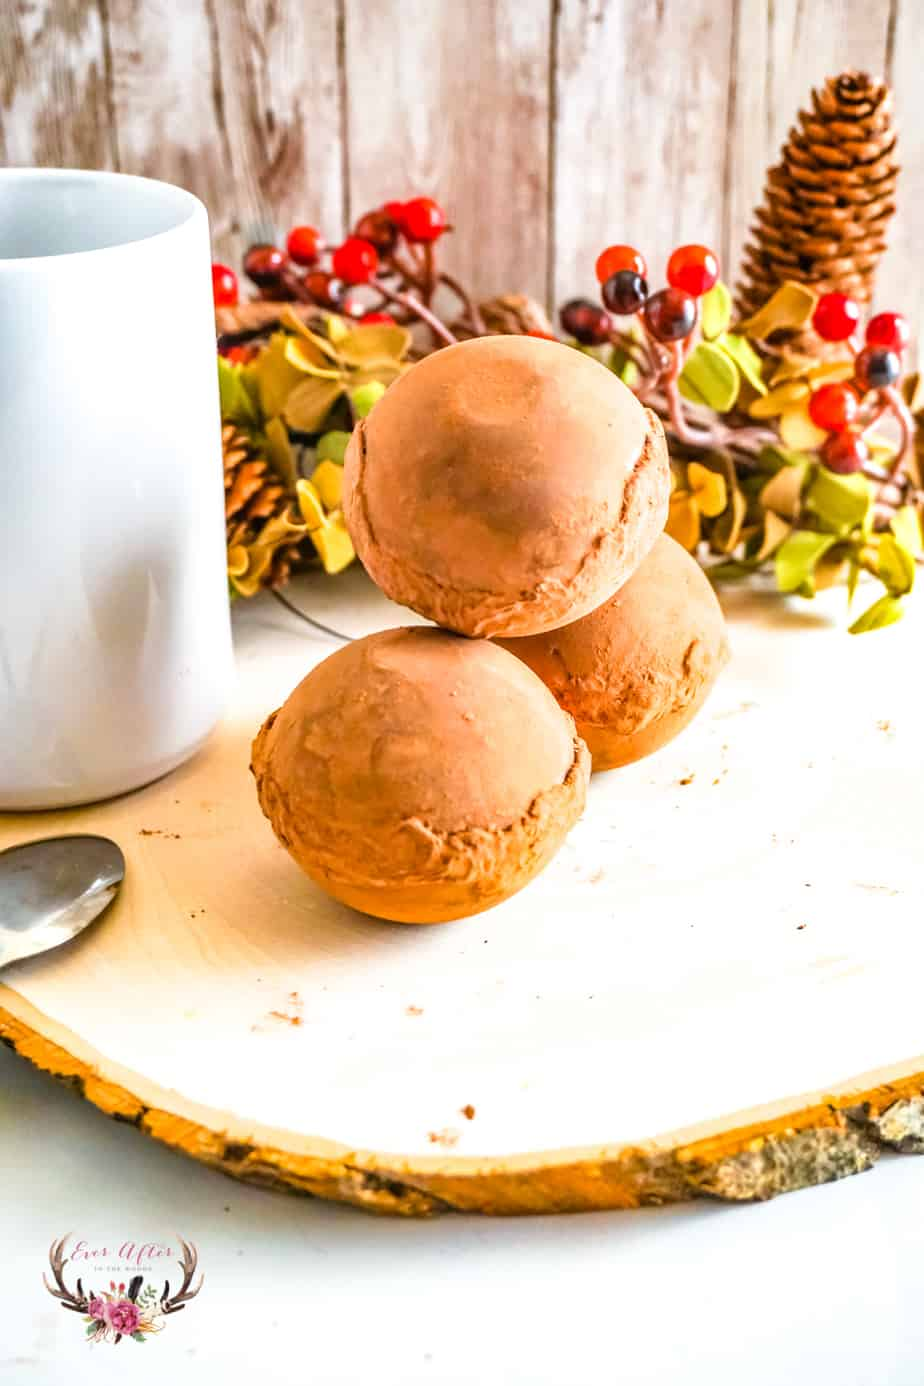 Hot Chocolate Bombs - Cinnamon Spice